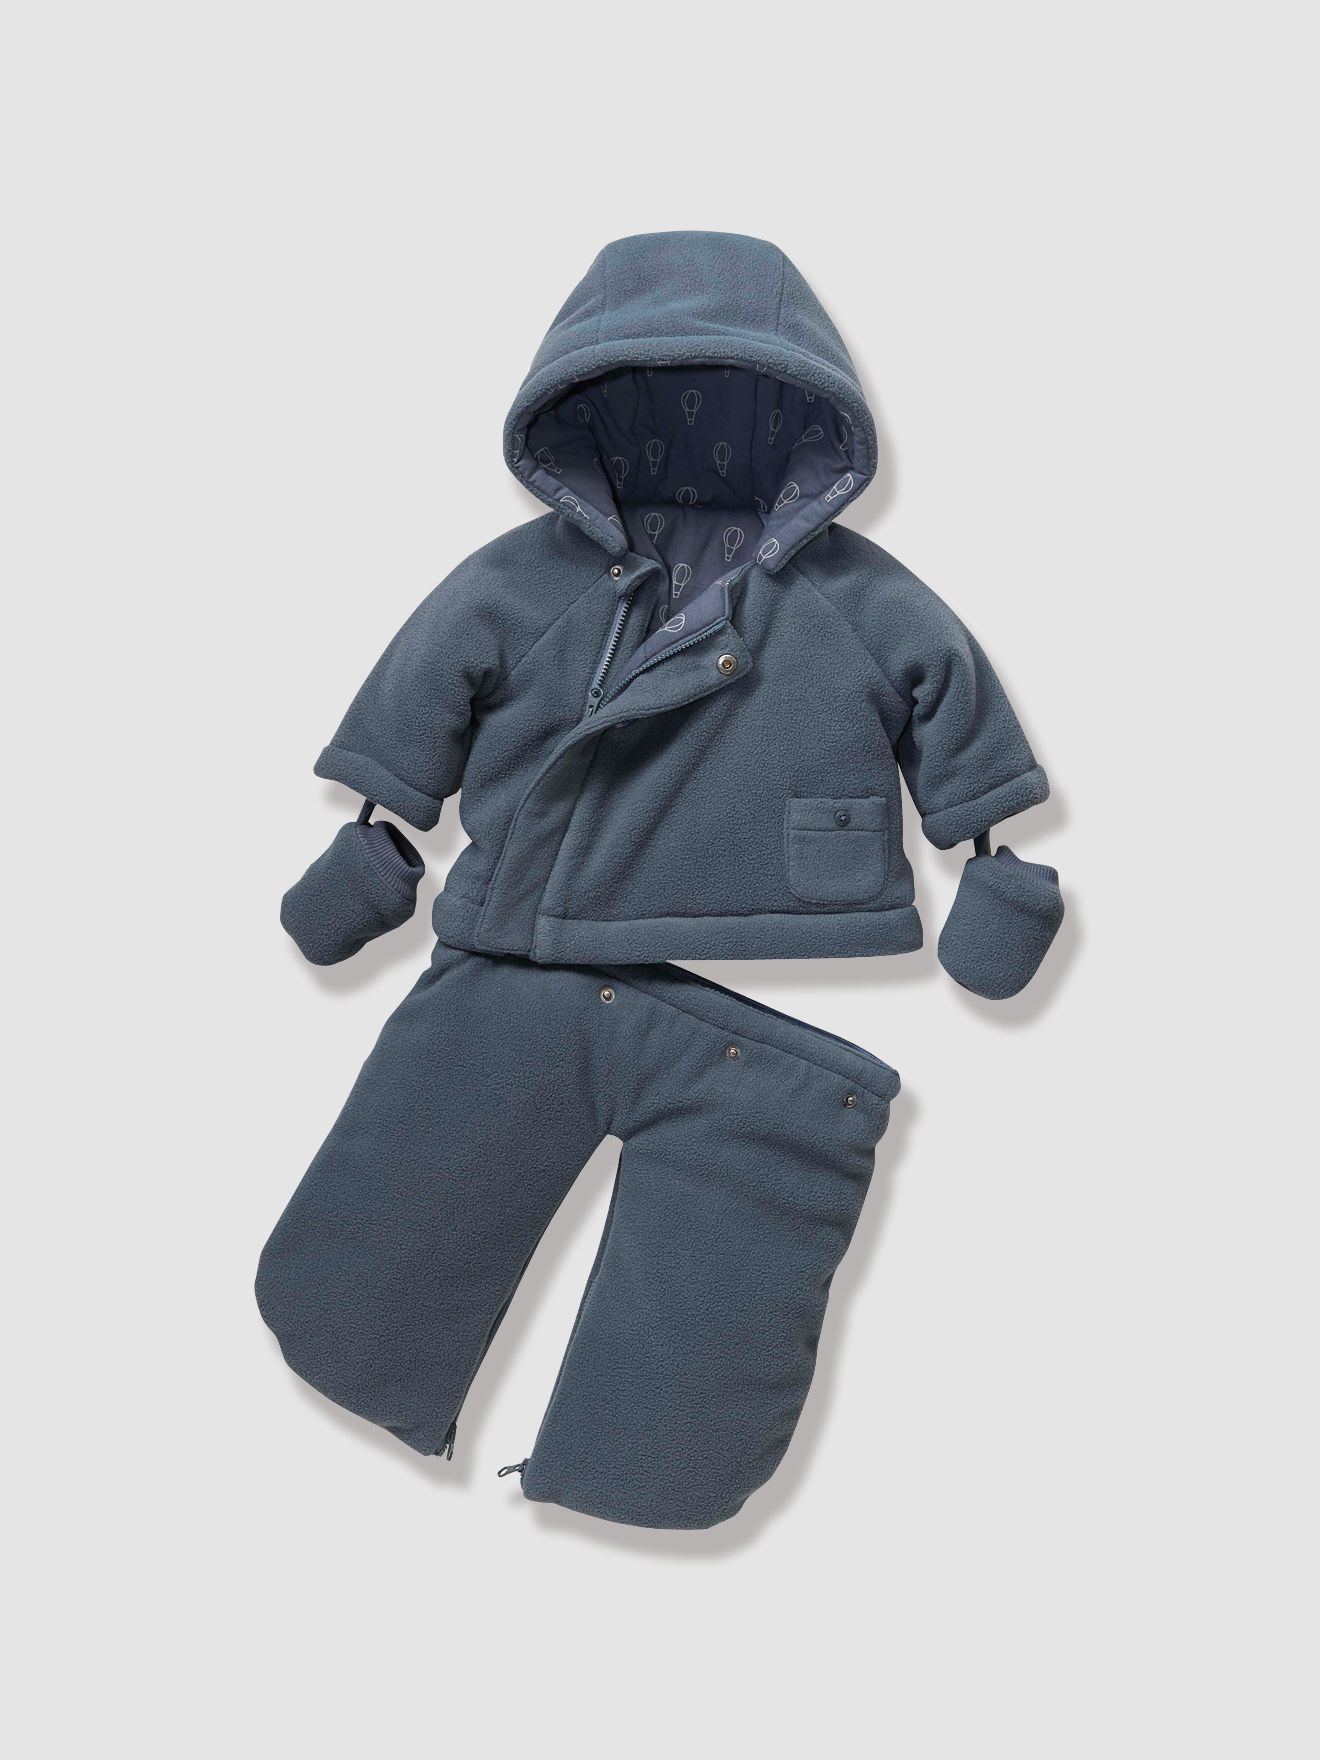 c3c7d80c6 half off 8068c 8e226 snowsuits for baby boys and girls from ...